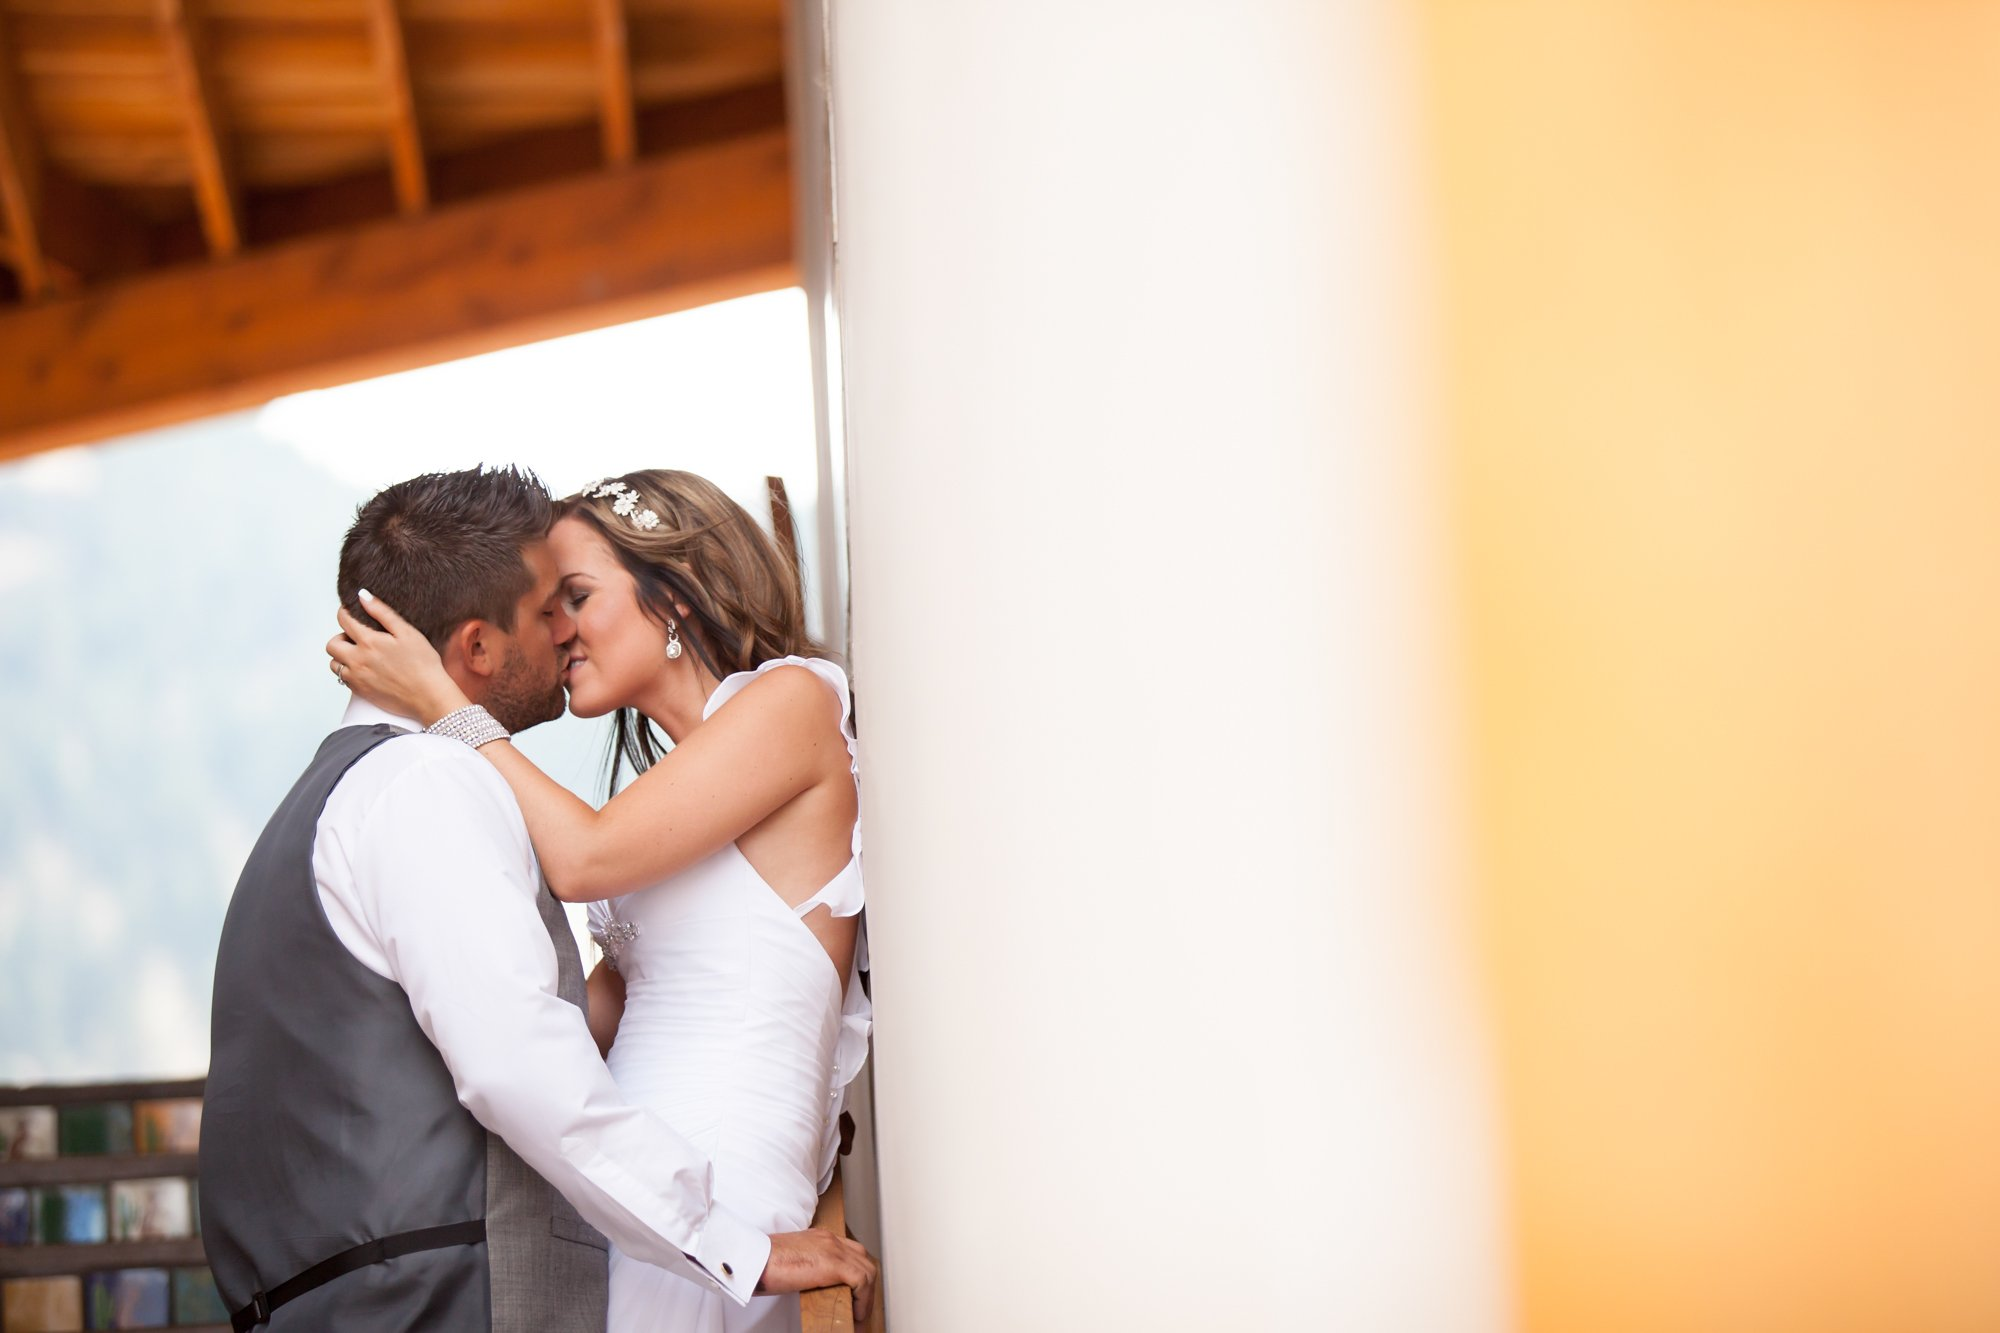 A bride kissing her groom against a wall